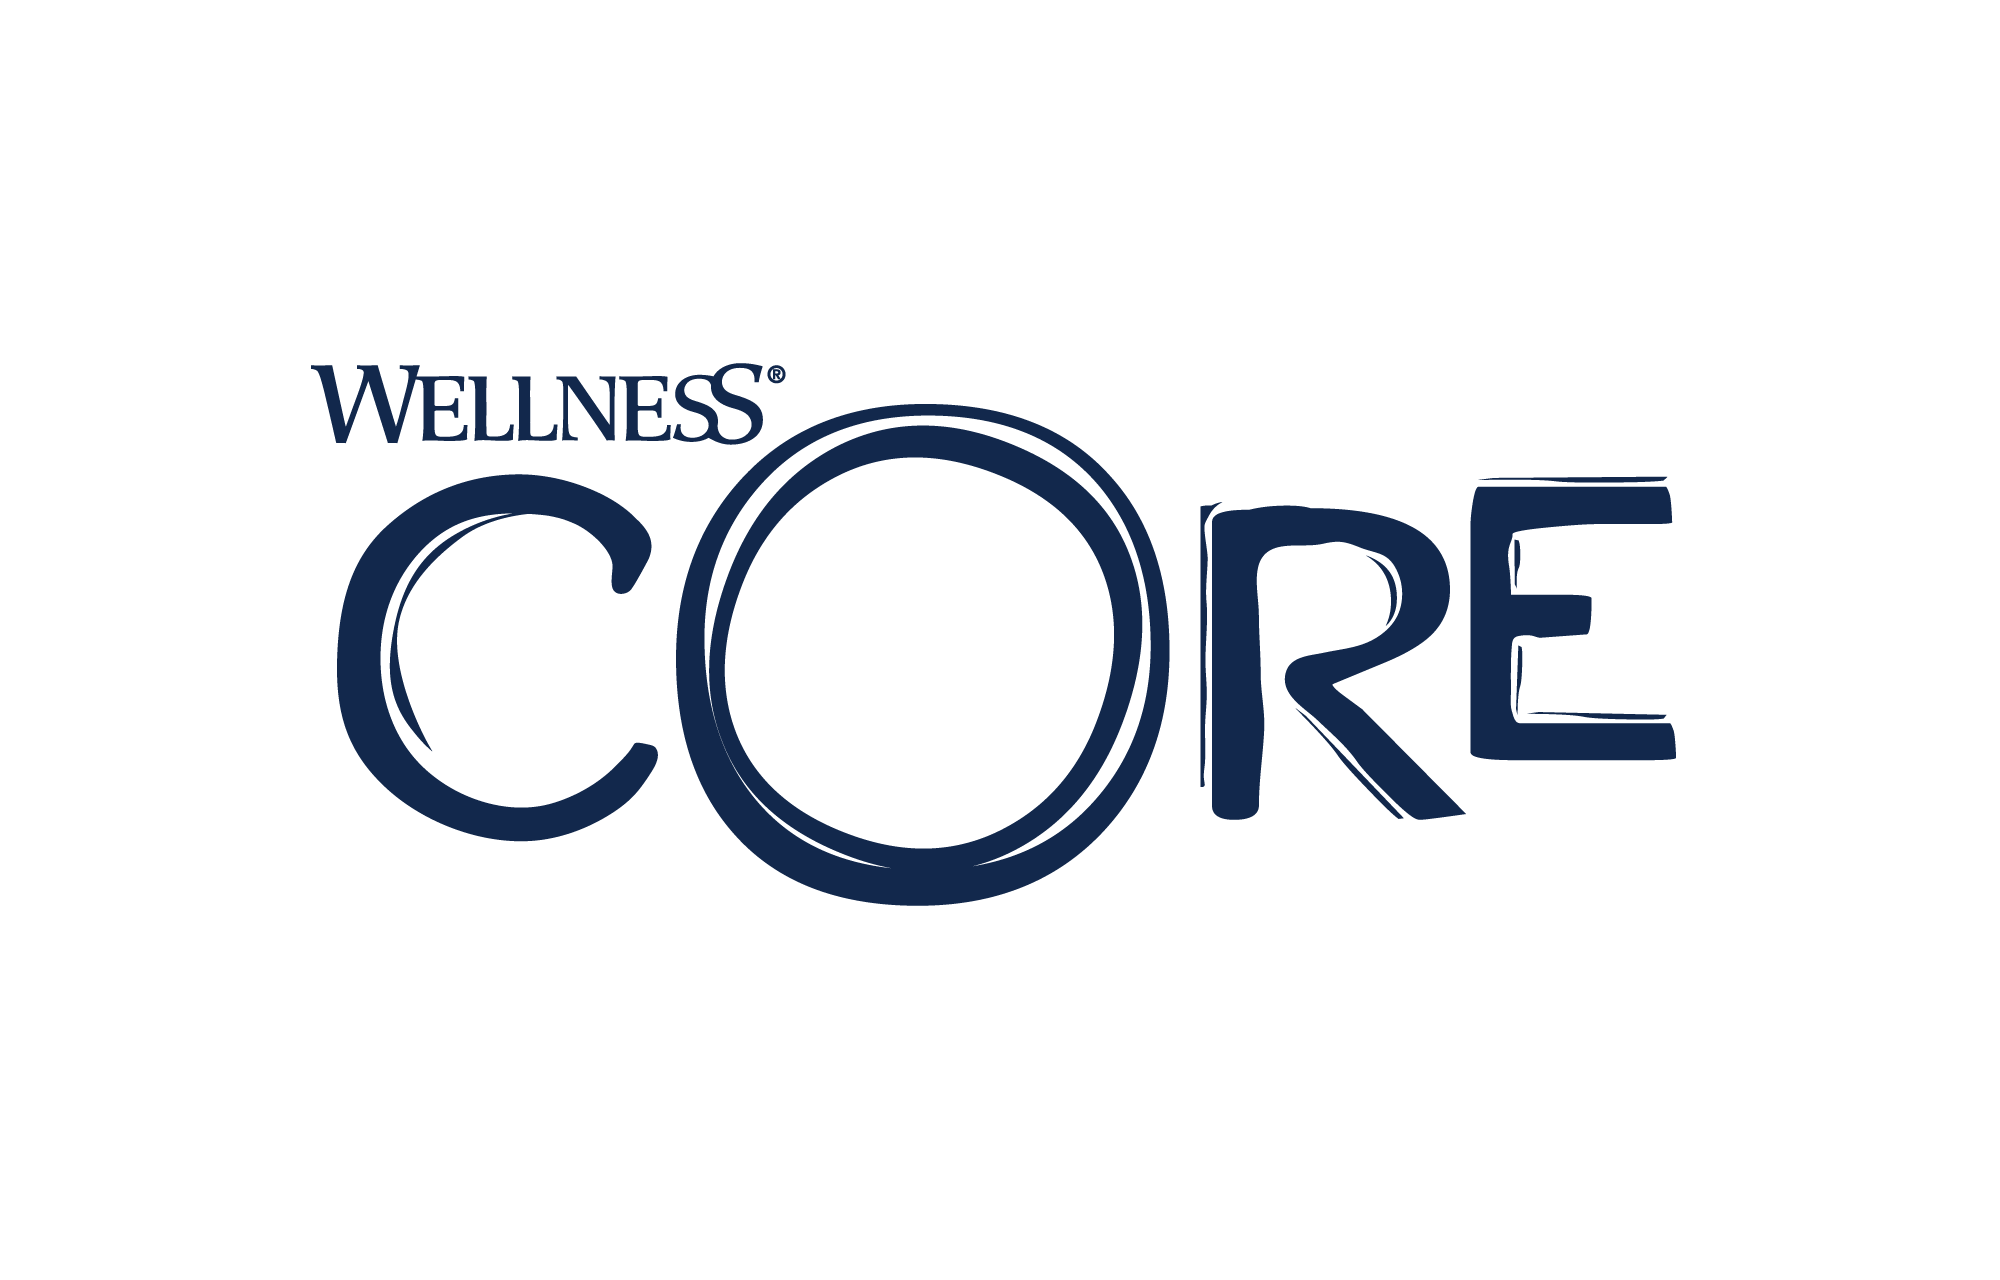 Blue Wellness core logo